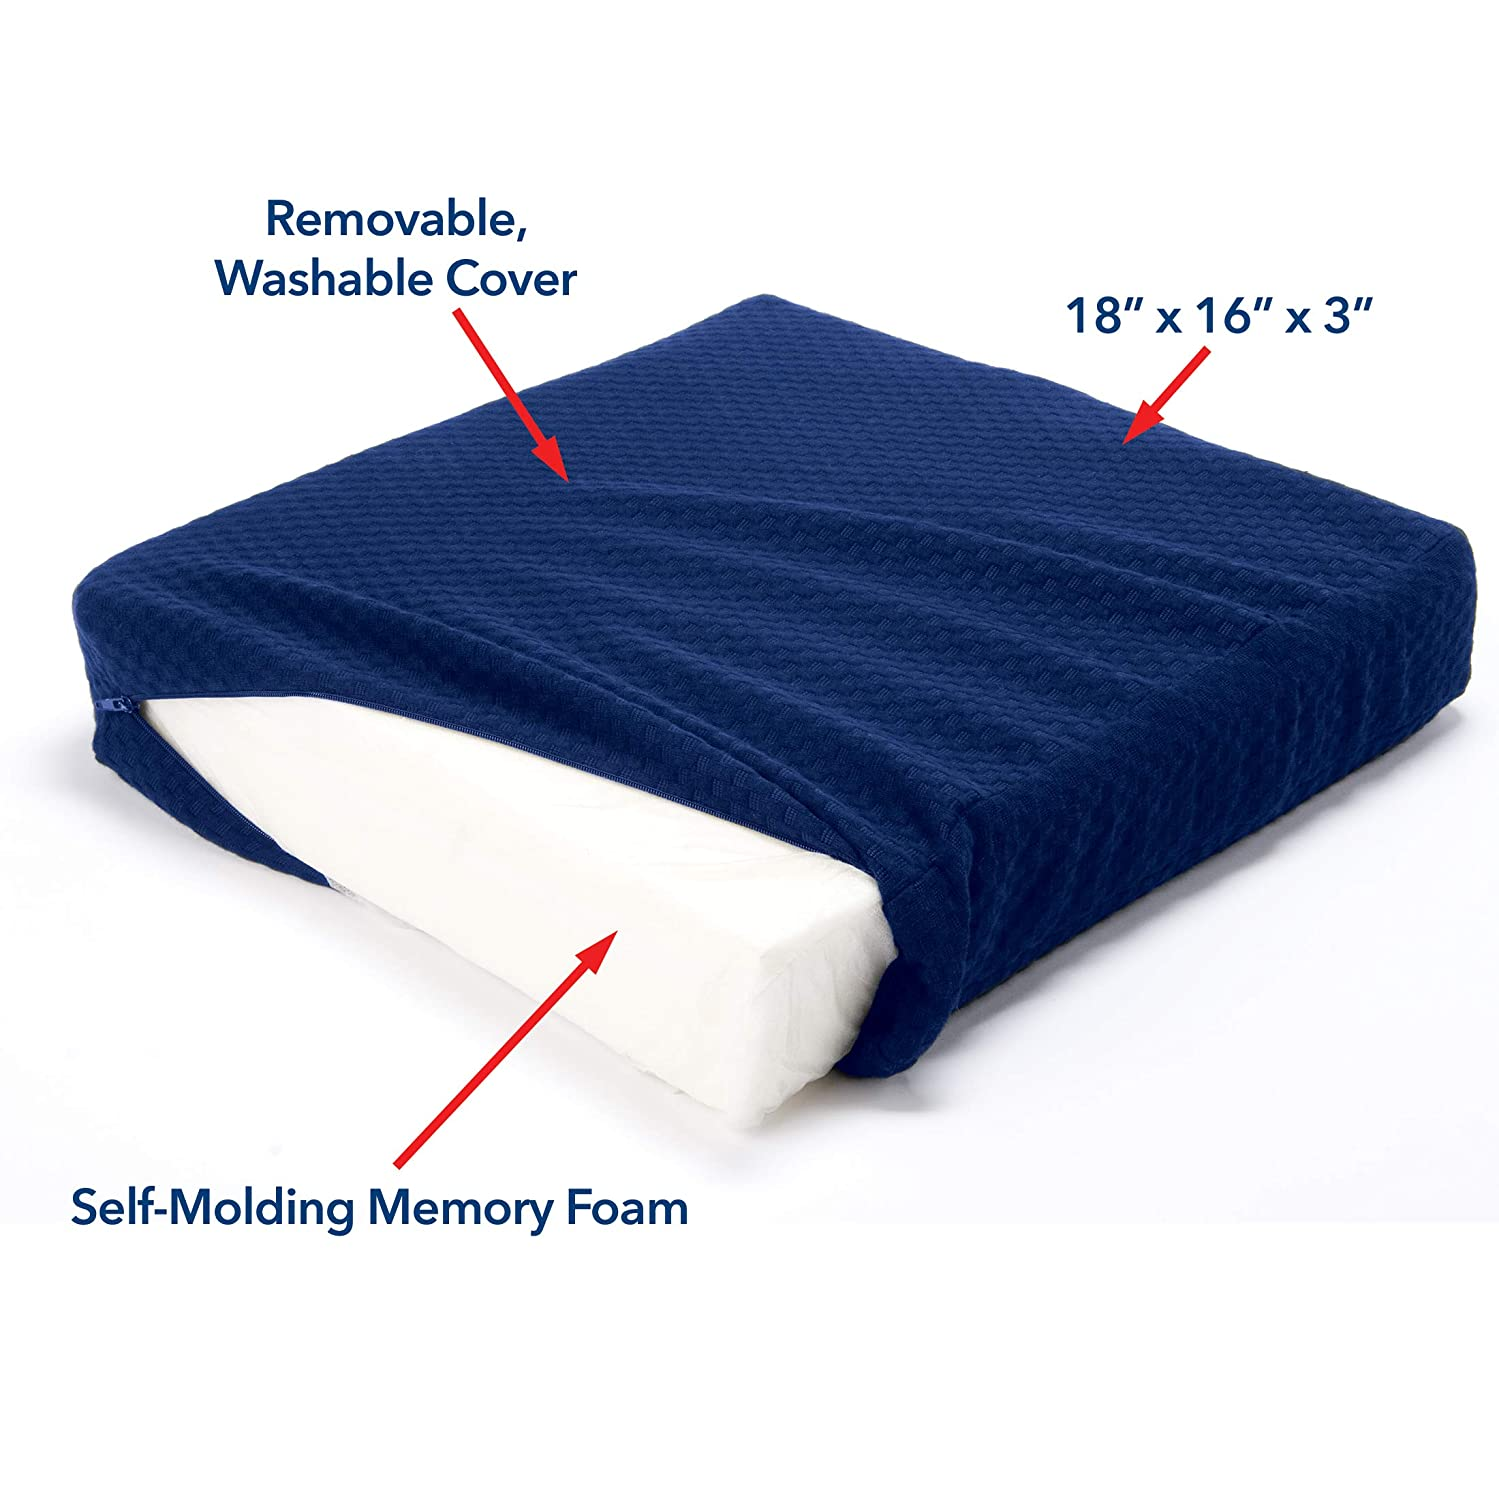 18 x 16 x 3 Carex Memory Foam Seat Cushion Comfortable Chair Pad Office Chair Cushion and Wheelchair Cushion